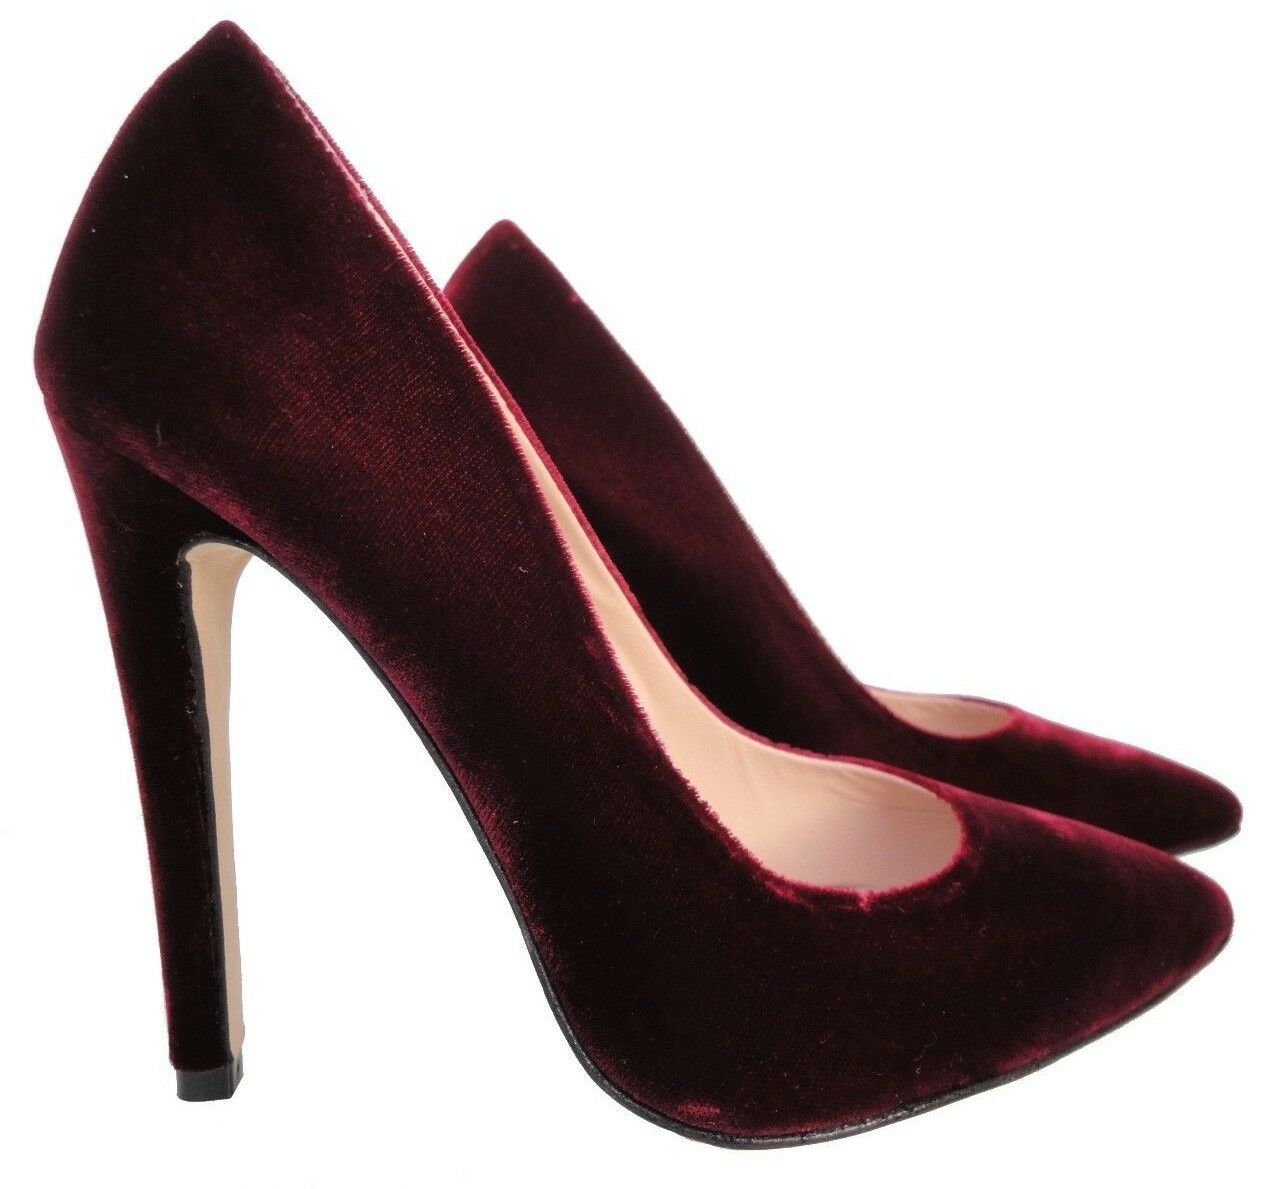 CQ COUTURE ITALY HIGH HEELS POINTY PUMPS SCHUHE Decolte Velvet Red Bourdeaux 41